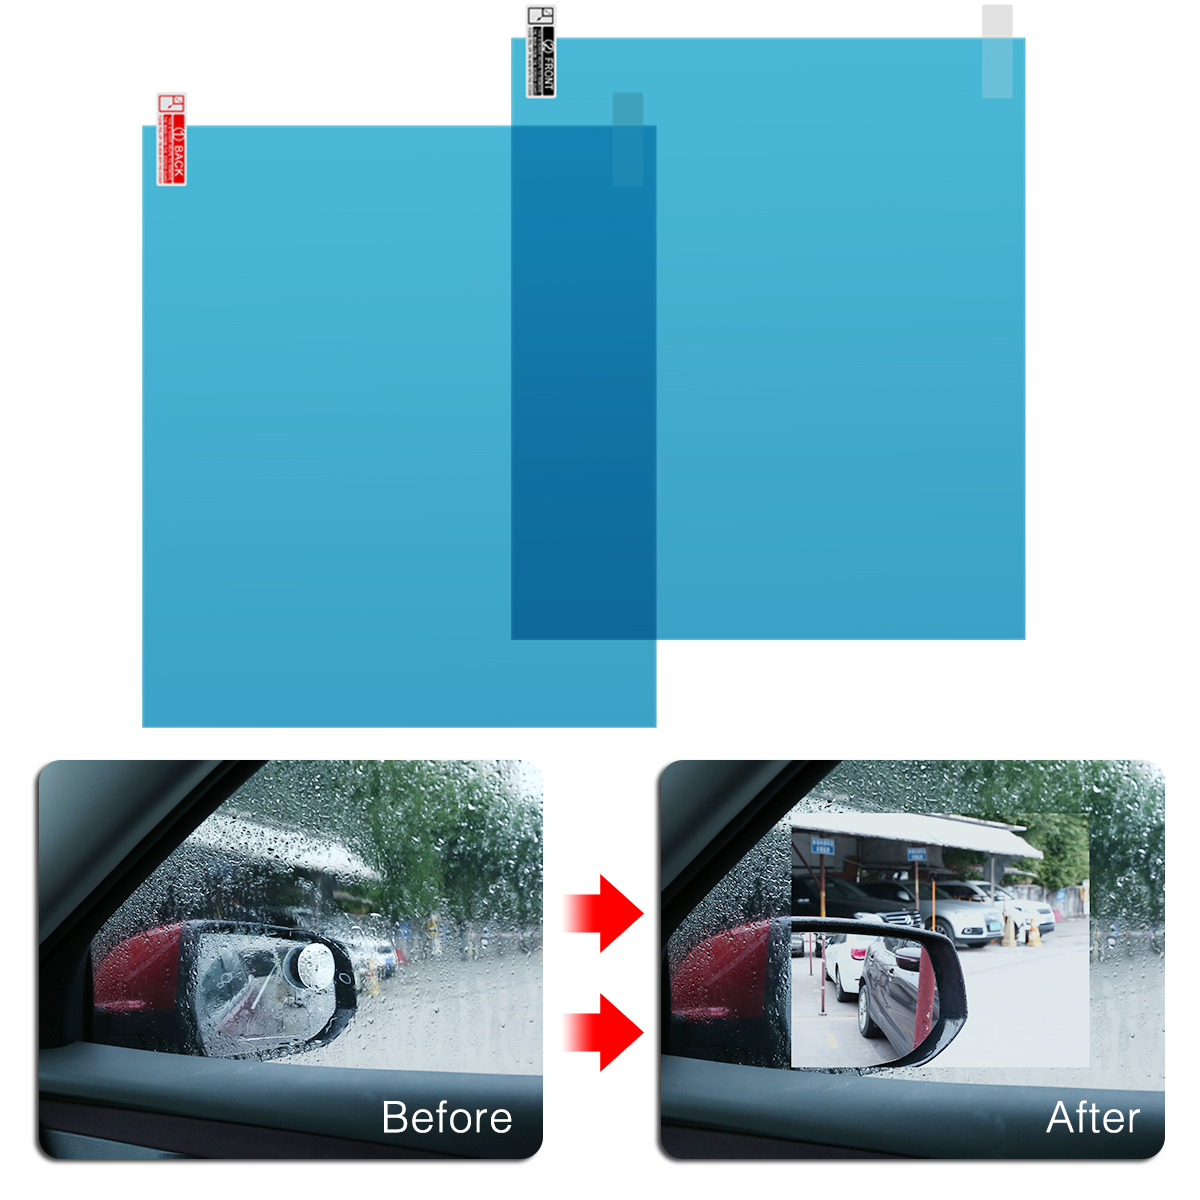 2Pcs/set 170*200mm Anti Water Fog Mist Film Rainproof Car Rearview Mirror Window Film Universal For All Cars